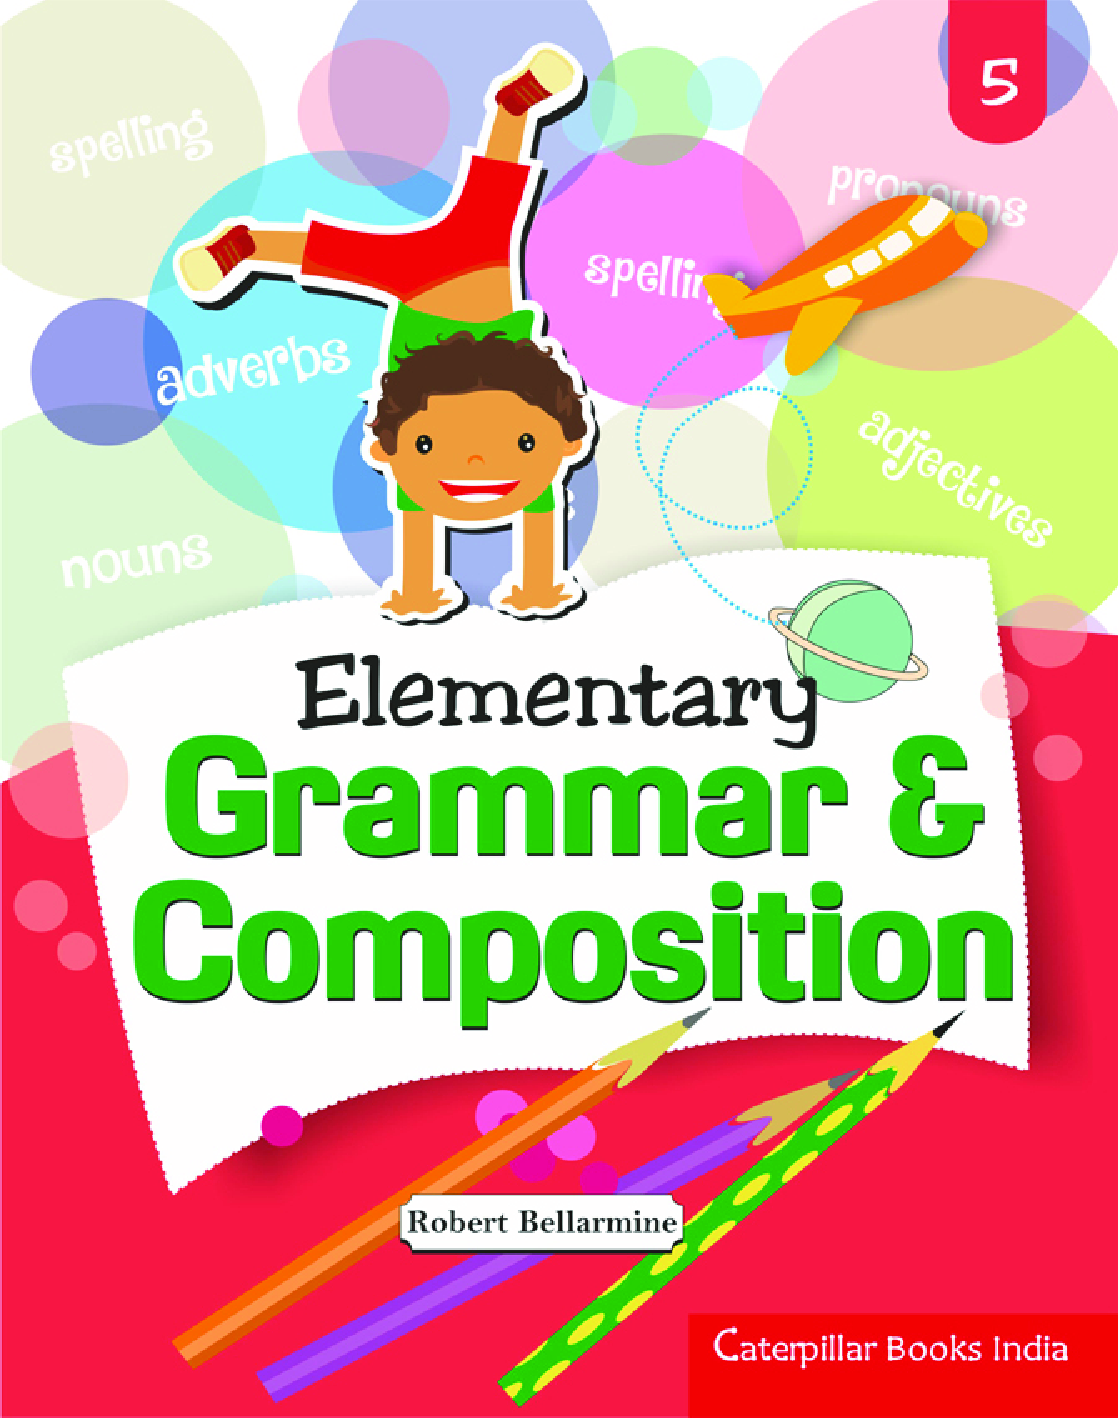 Elementary Grammar And Composition - 5 - Page 1